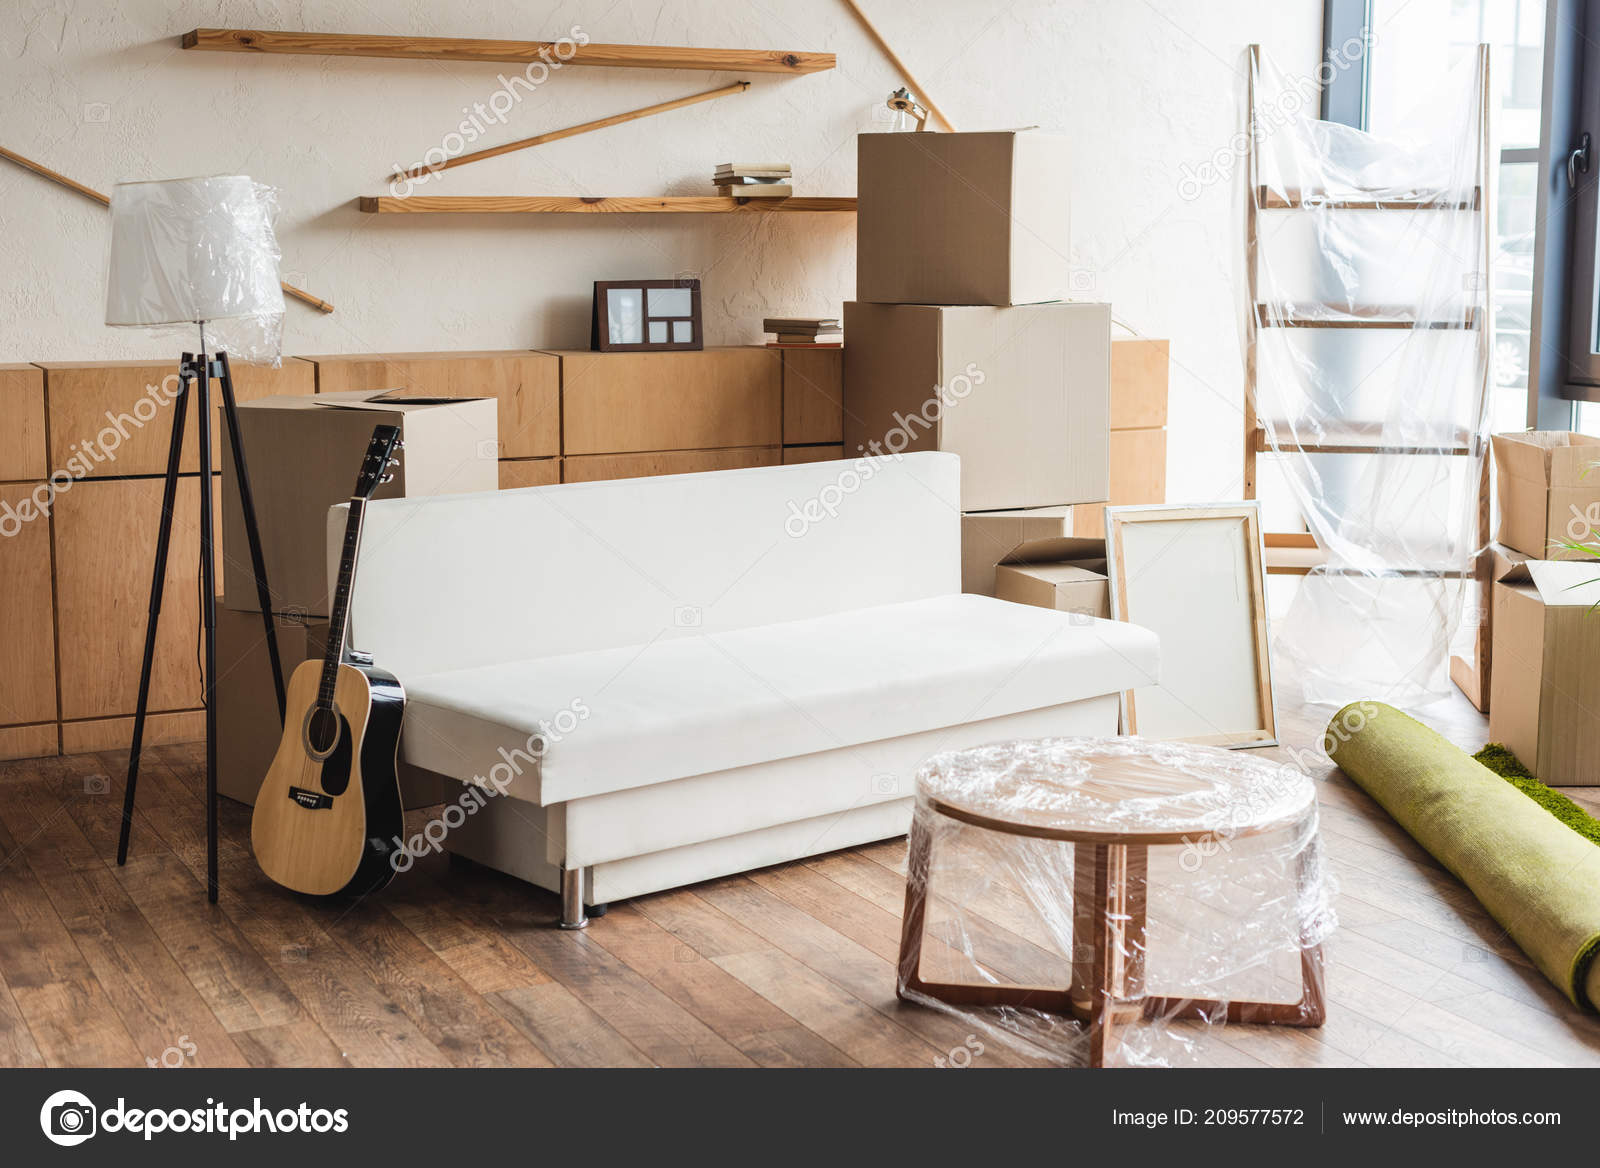 Cardboard Boxes Rolled Carpet Guitar Furniture New Apartment ...